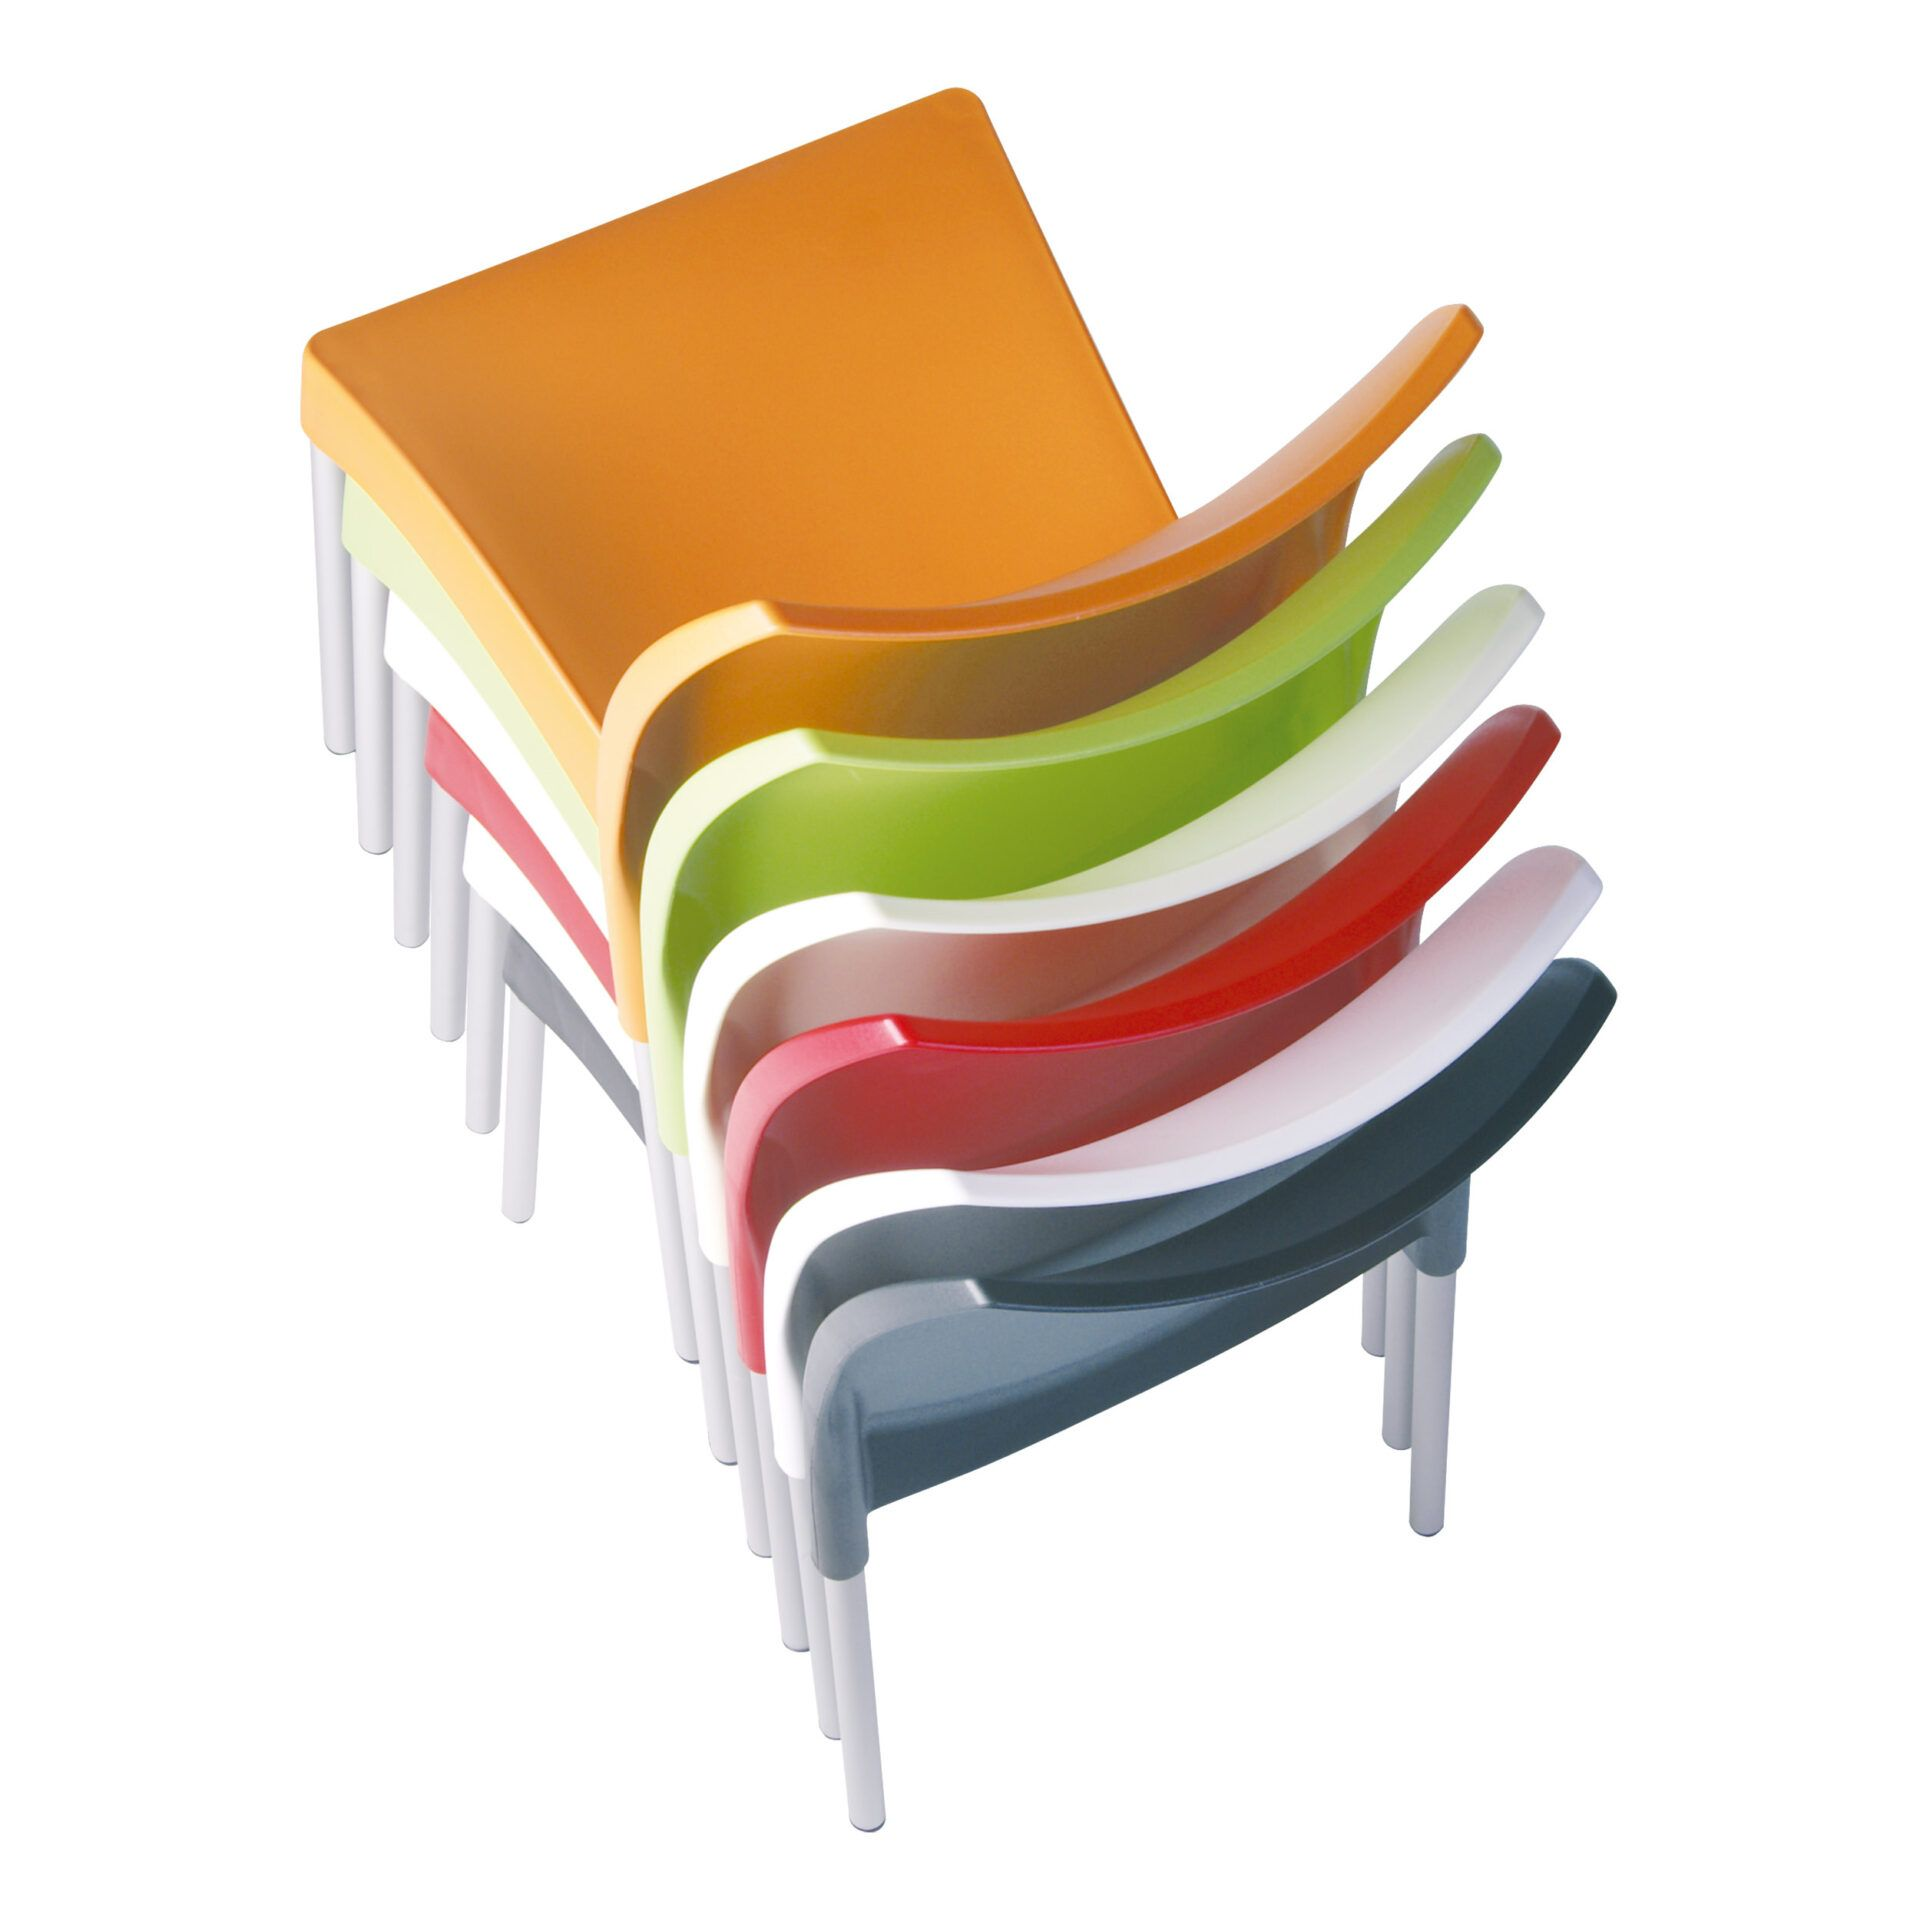 commercial outdoor hospitality seating vita chair stack 01